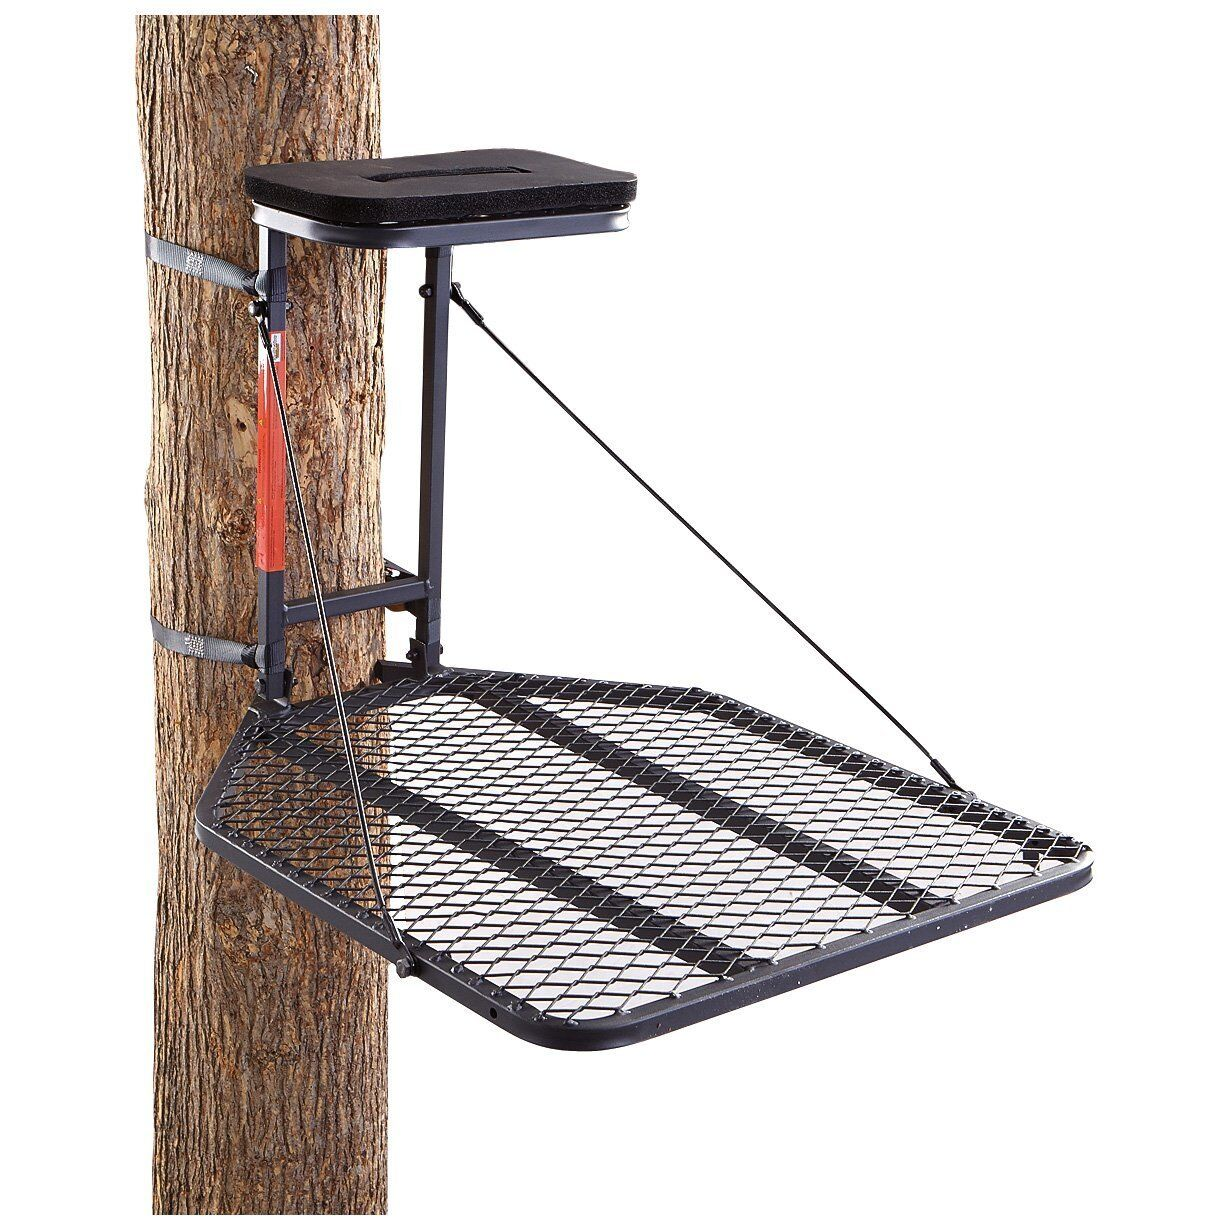 Direct Outdoors Hang-on Fixed Position Tree Stand 24 x 29.5 XL w/ Ratchet Straps